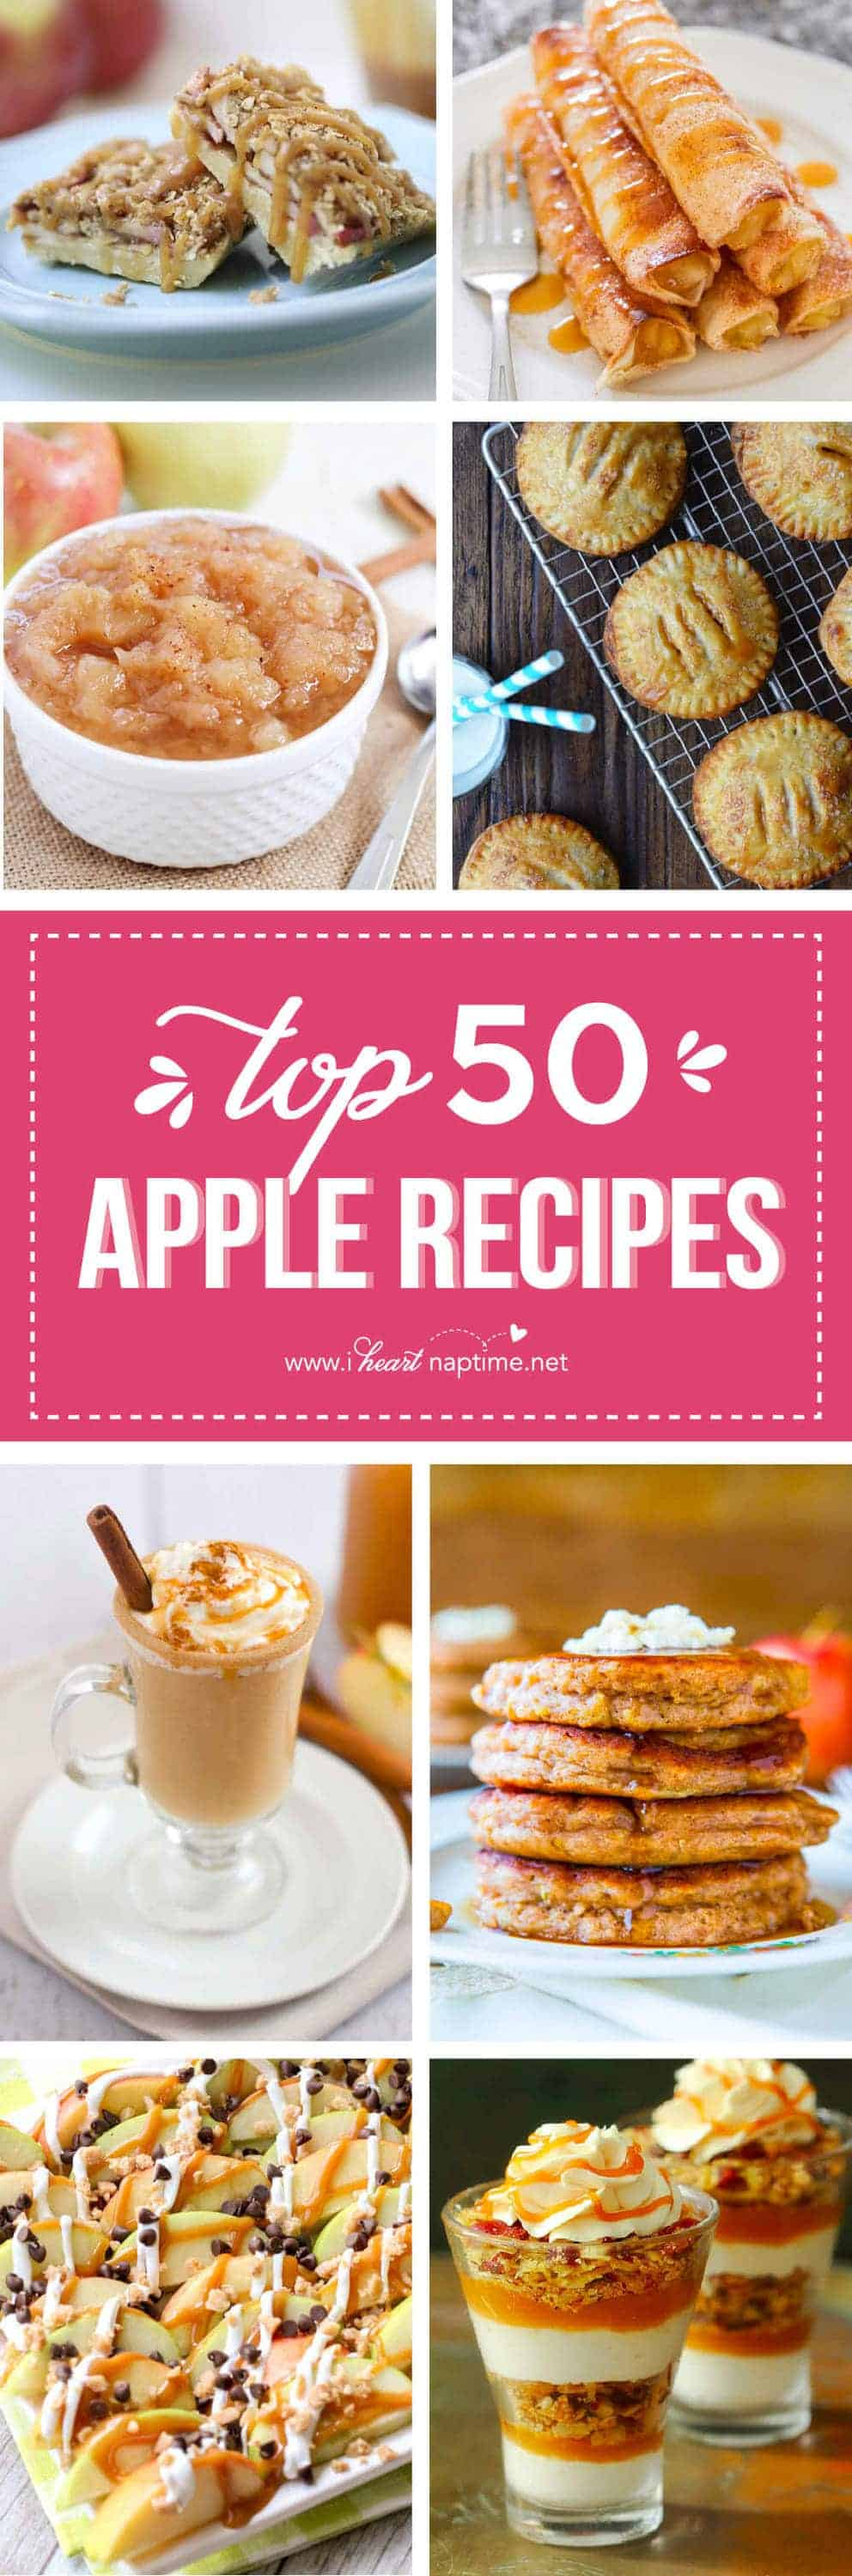 Top 50 Apple Recipes - it's the best time of the year, when apples are fresh and plentiful! We have the best apple pie recipes, and many more outstanding recipes using apples right here!